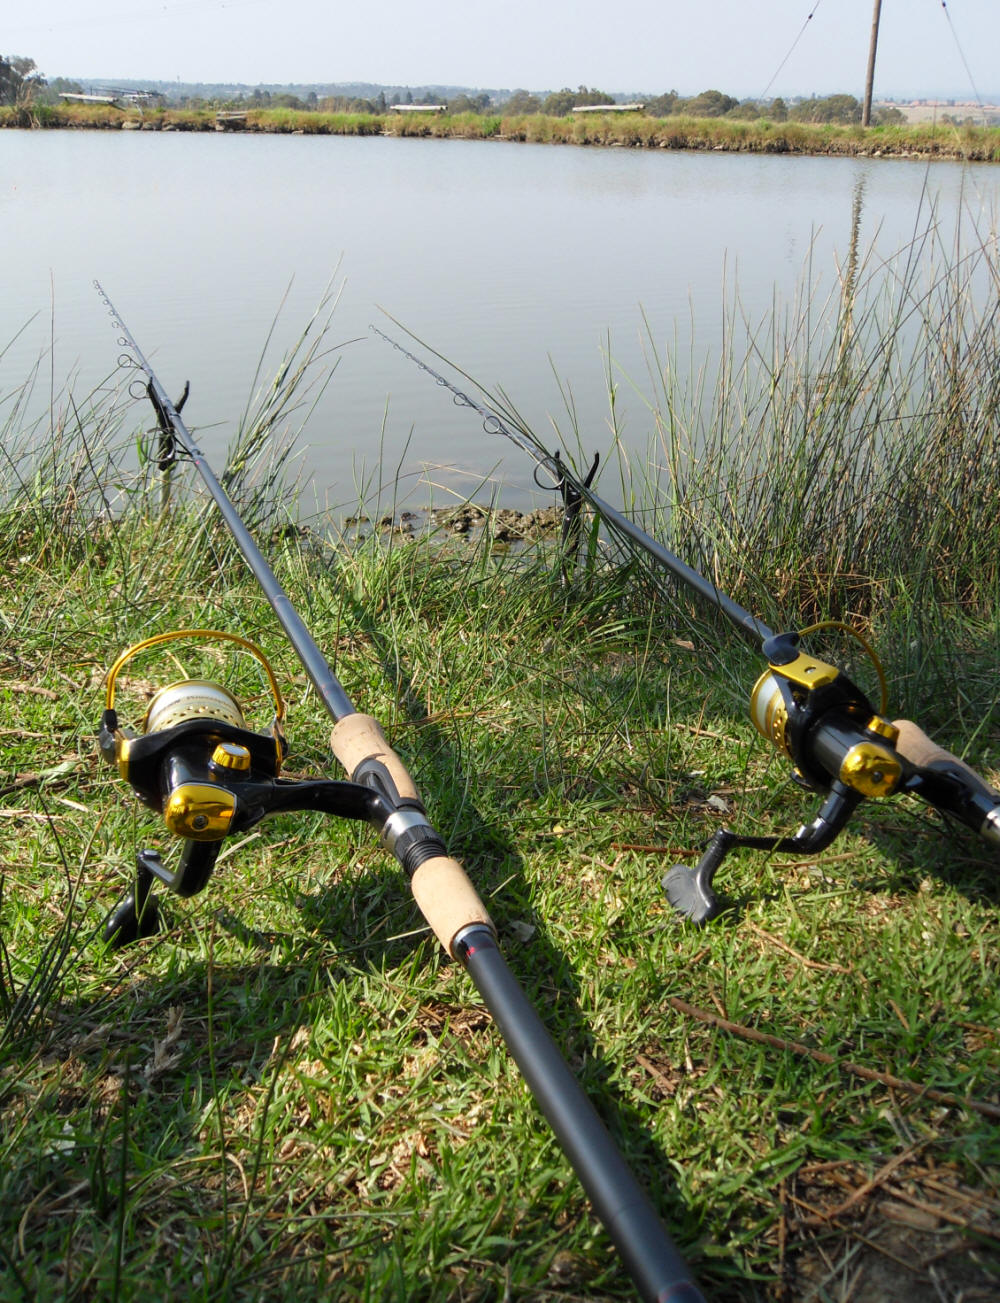 south african fishing & angling reports, stories & articles, Reel Combo